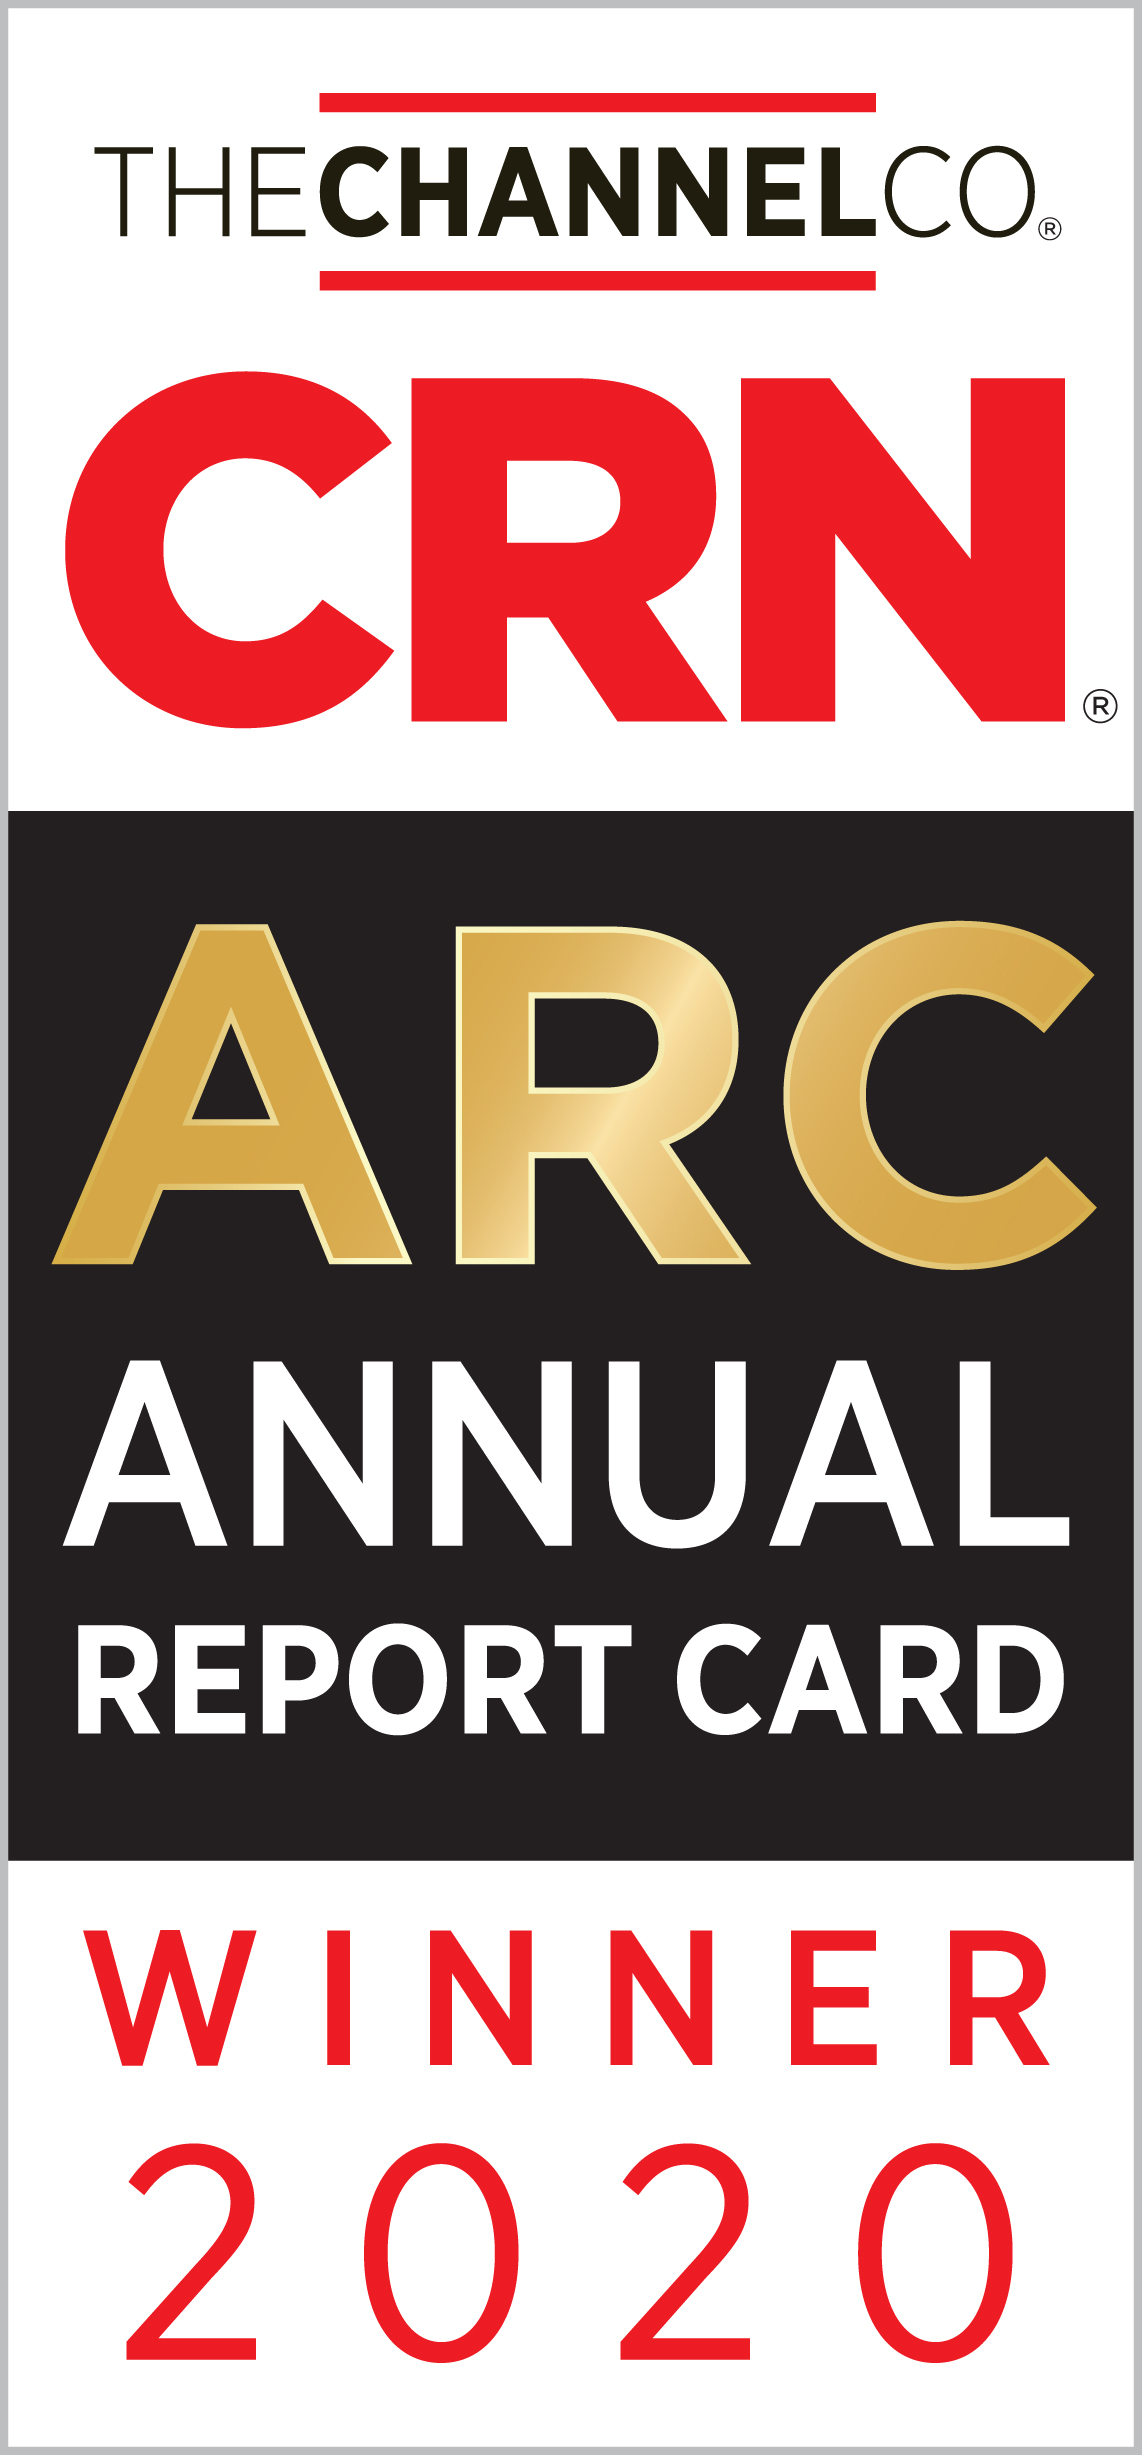 Barracuda Honored as a Winner for Data Protection Software on CRN's 2020 Annual Report Card